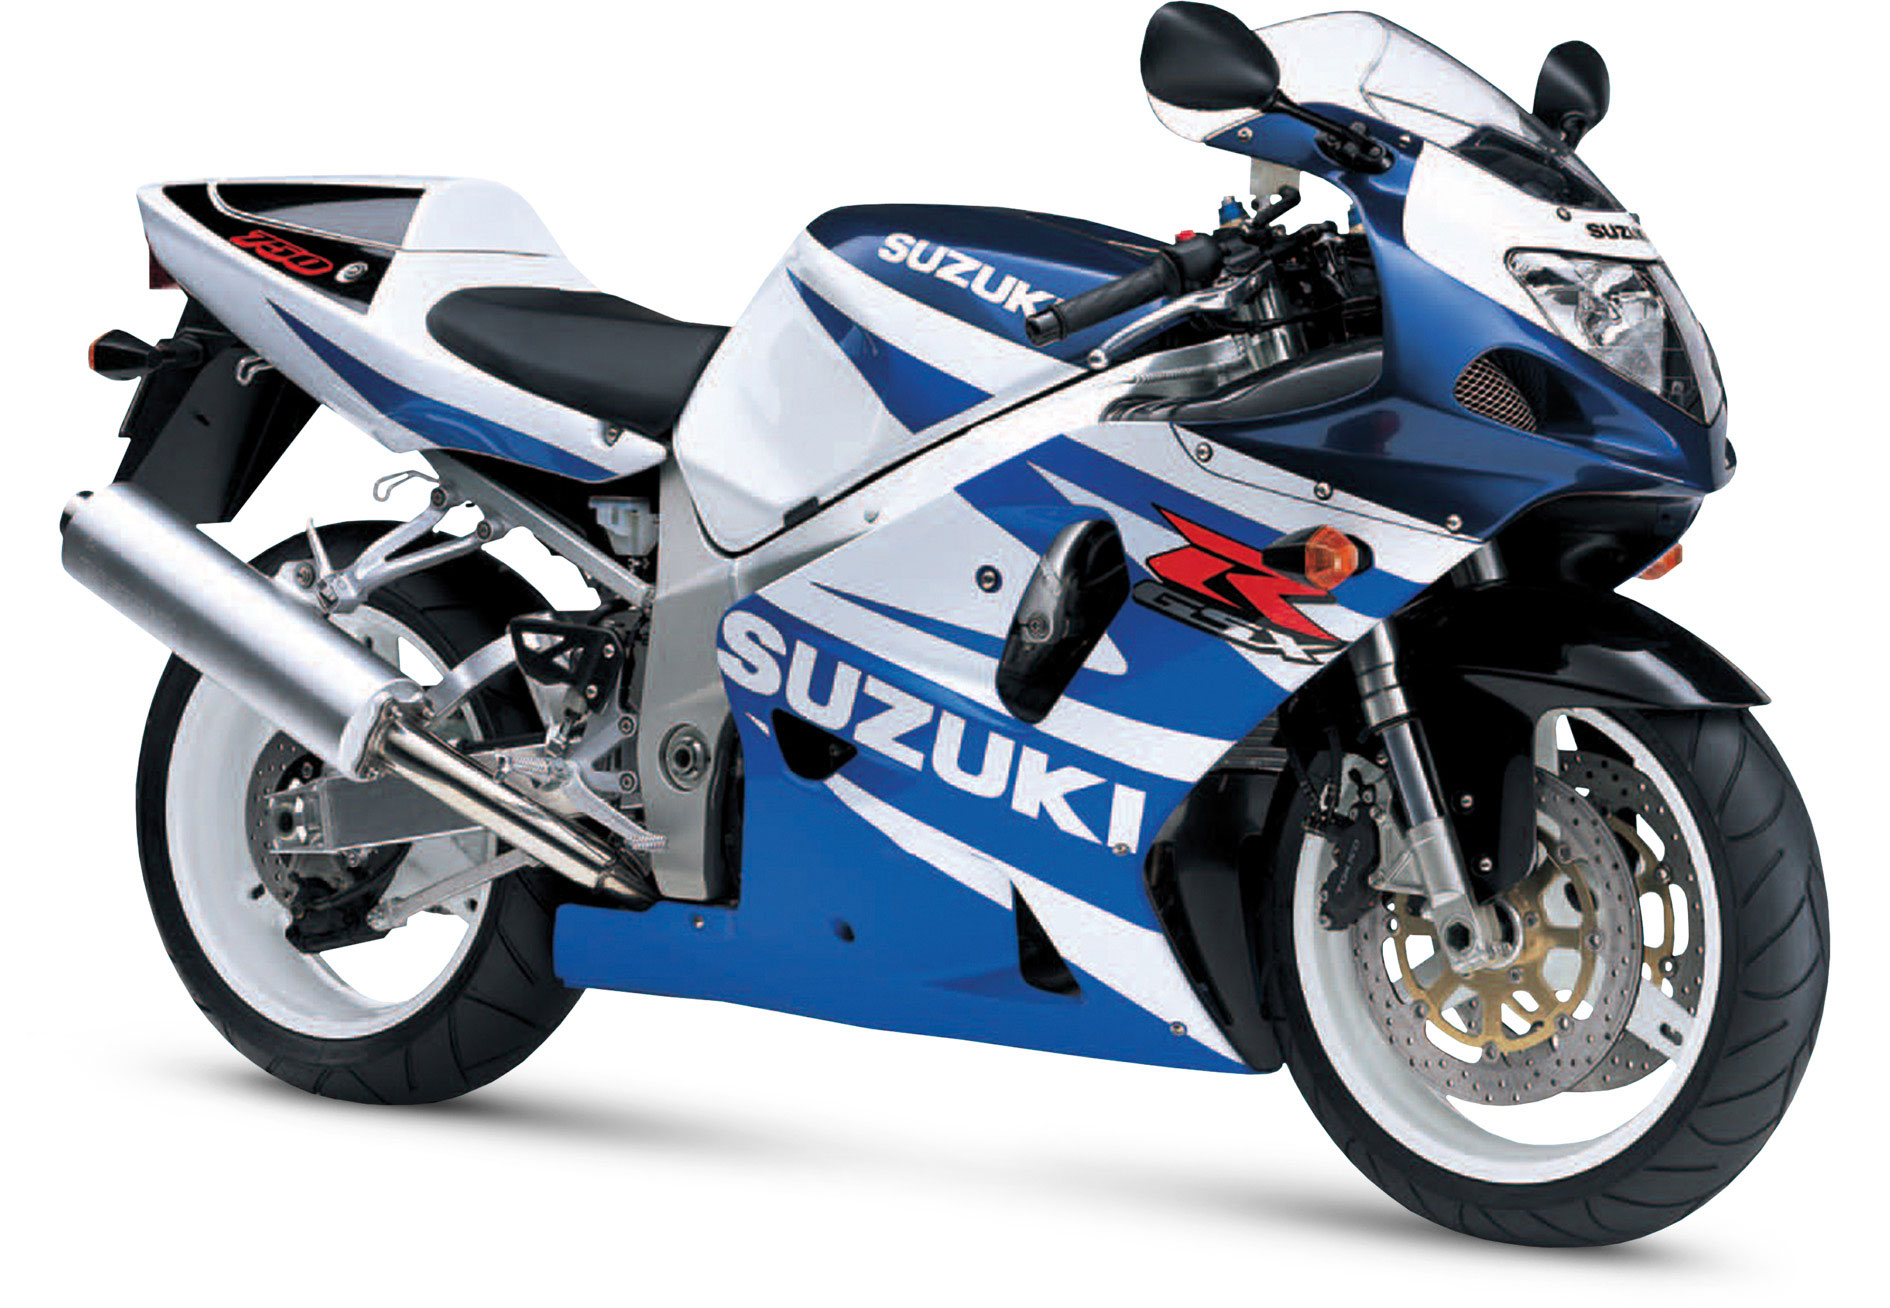 suzuki suzuki gsx r 750 r moto zombdrive com. Black Bedroom Furniture Sets. Home Design Ideas